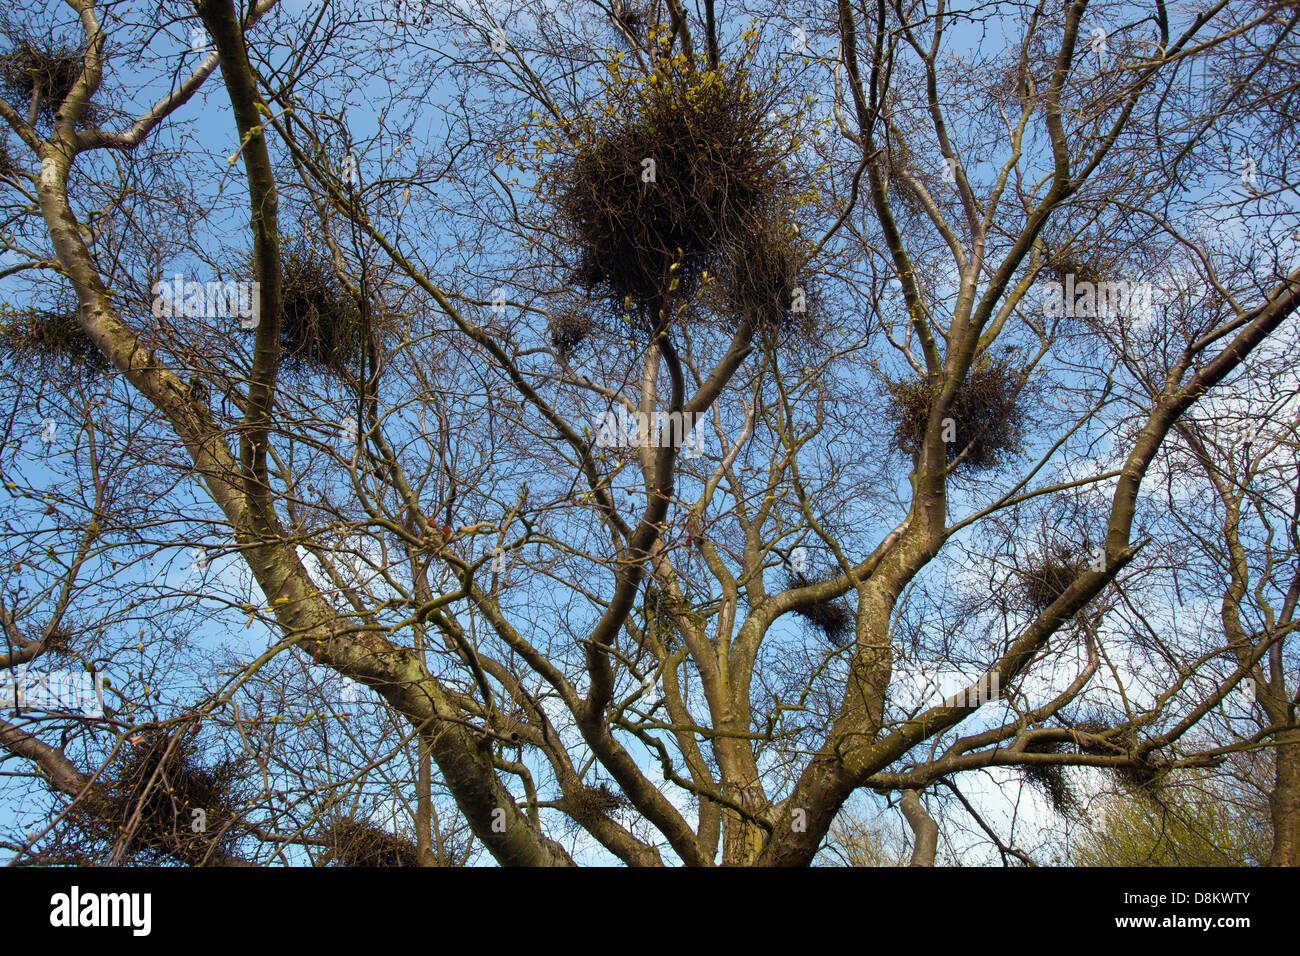 Witches Broom disease on Silver Birch Tree Spring Norfolk - Stock Image